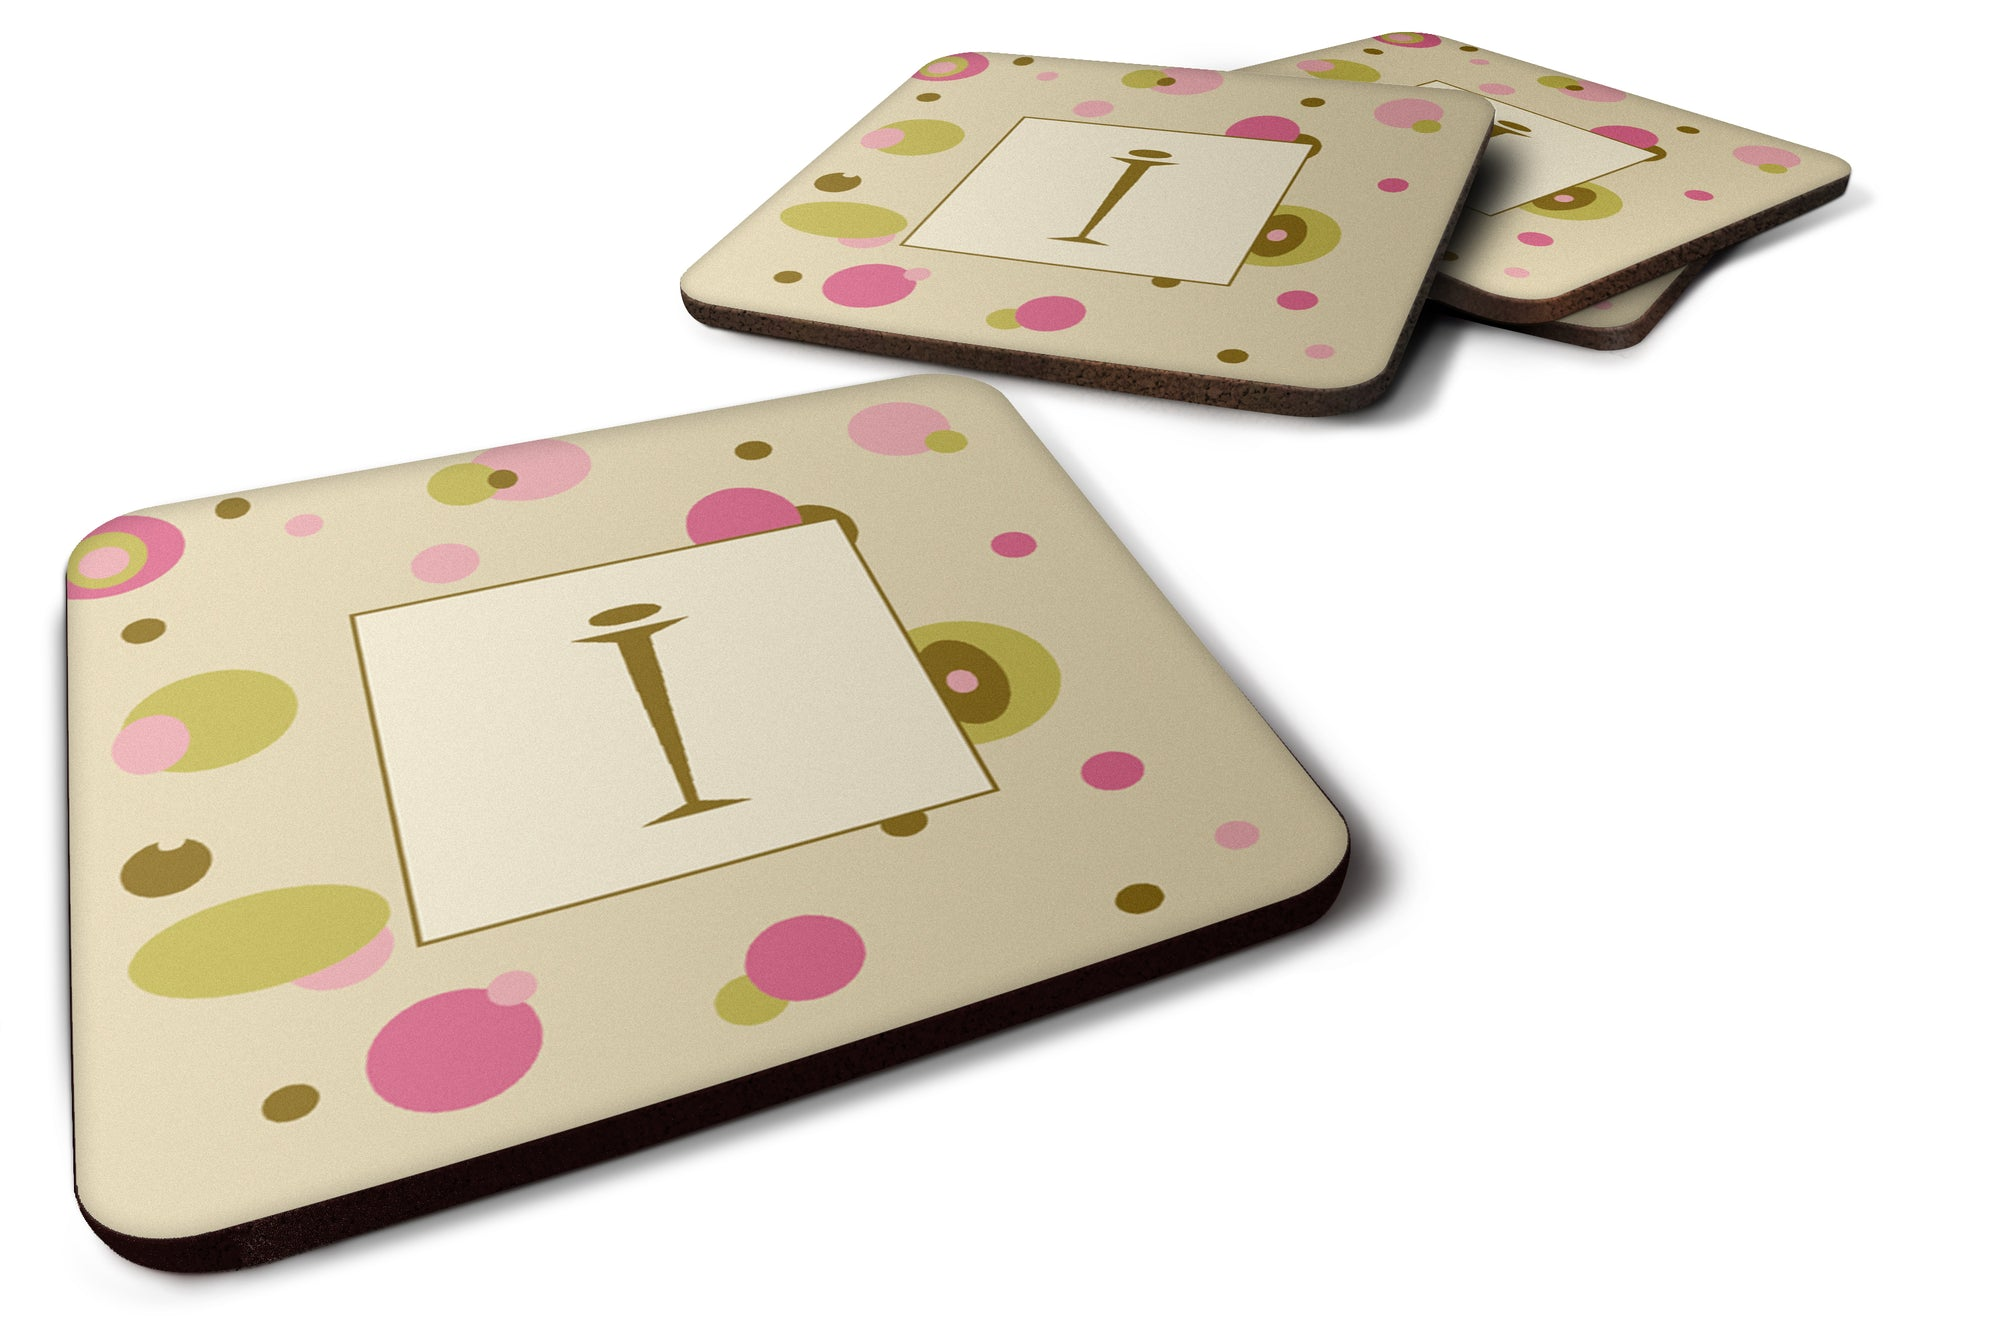 Set of 4 Monogram - Tan Dots Foam Coasters Initial Letter I by Caroline's Treasures